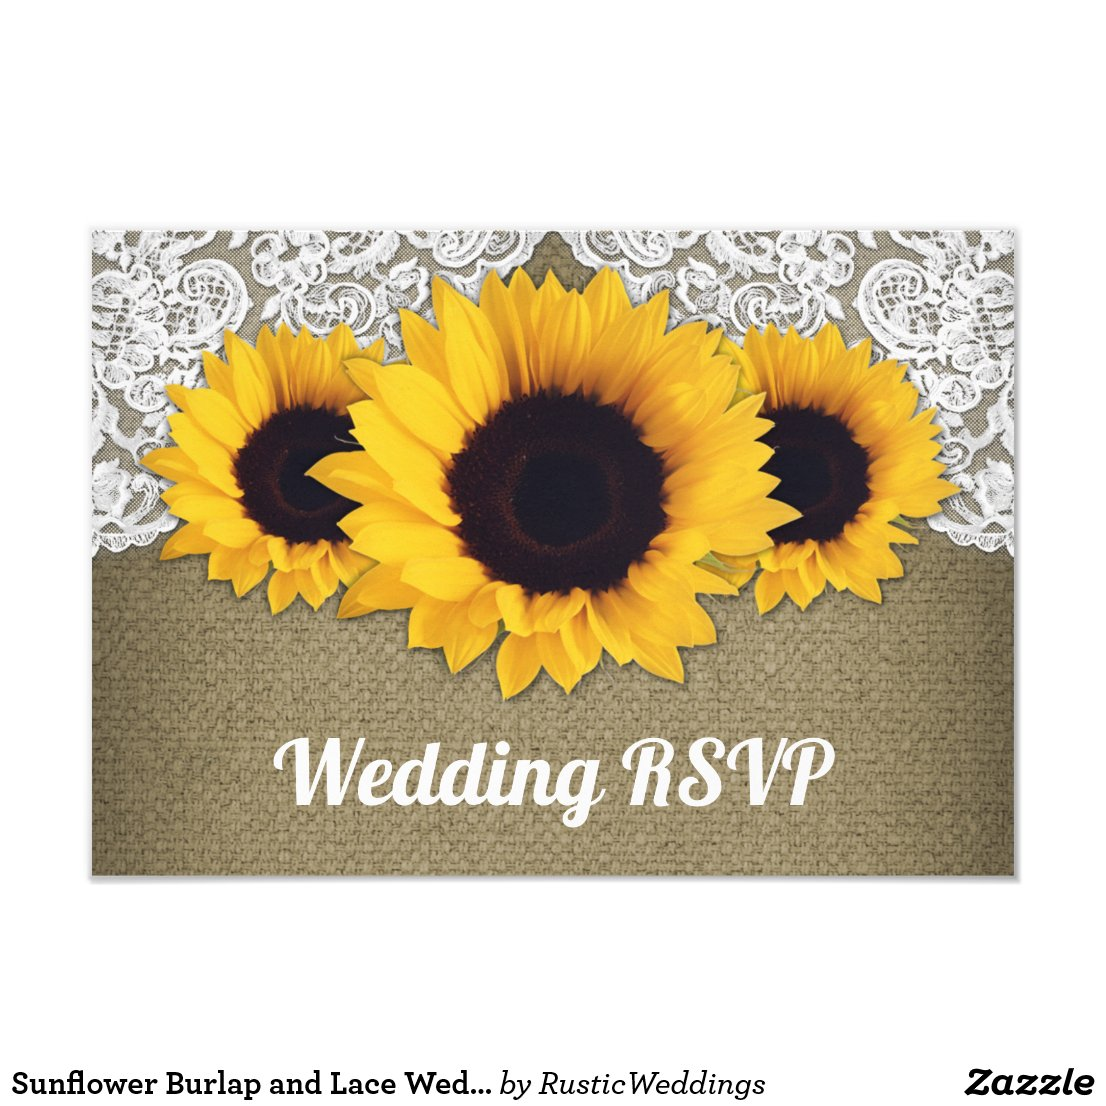 Sunflower Burlap and Lace Wedding RSVP Cards